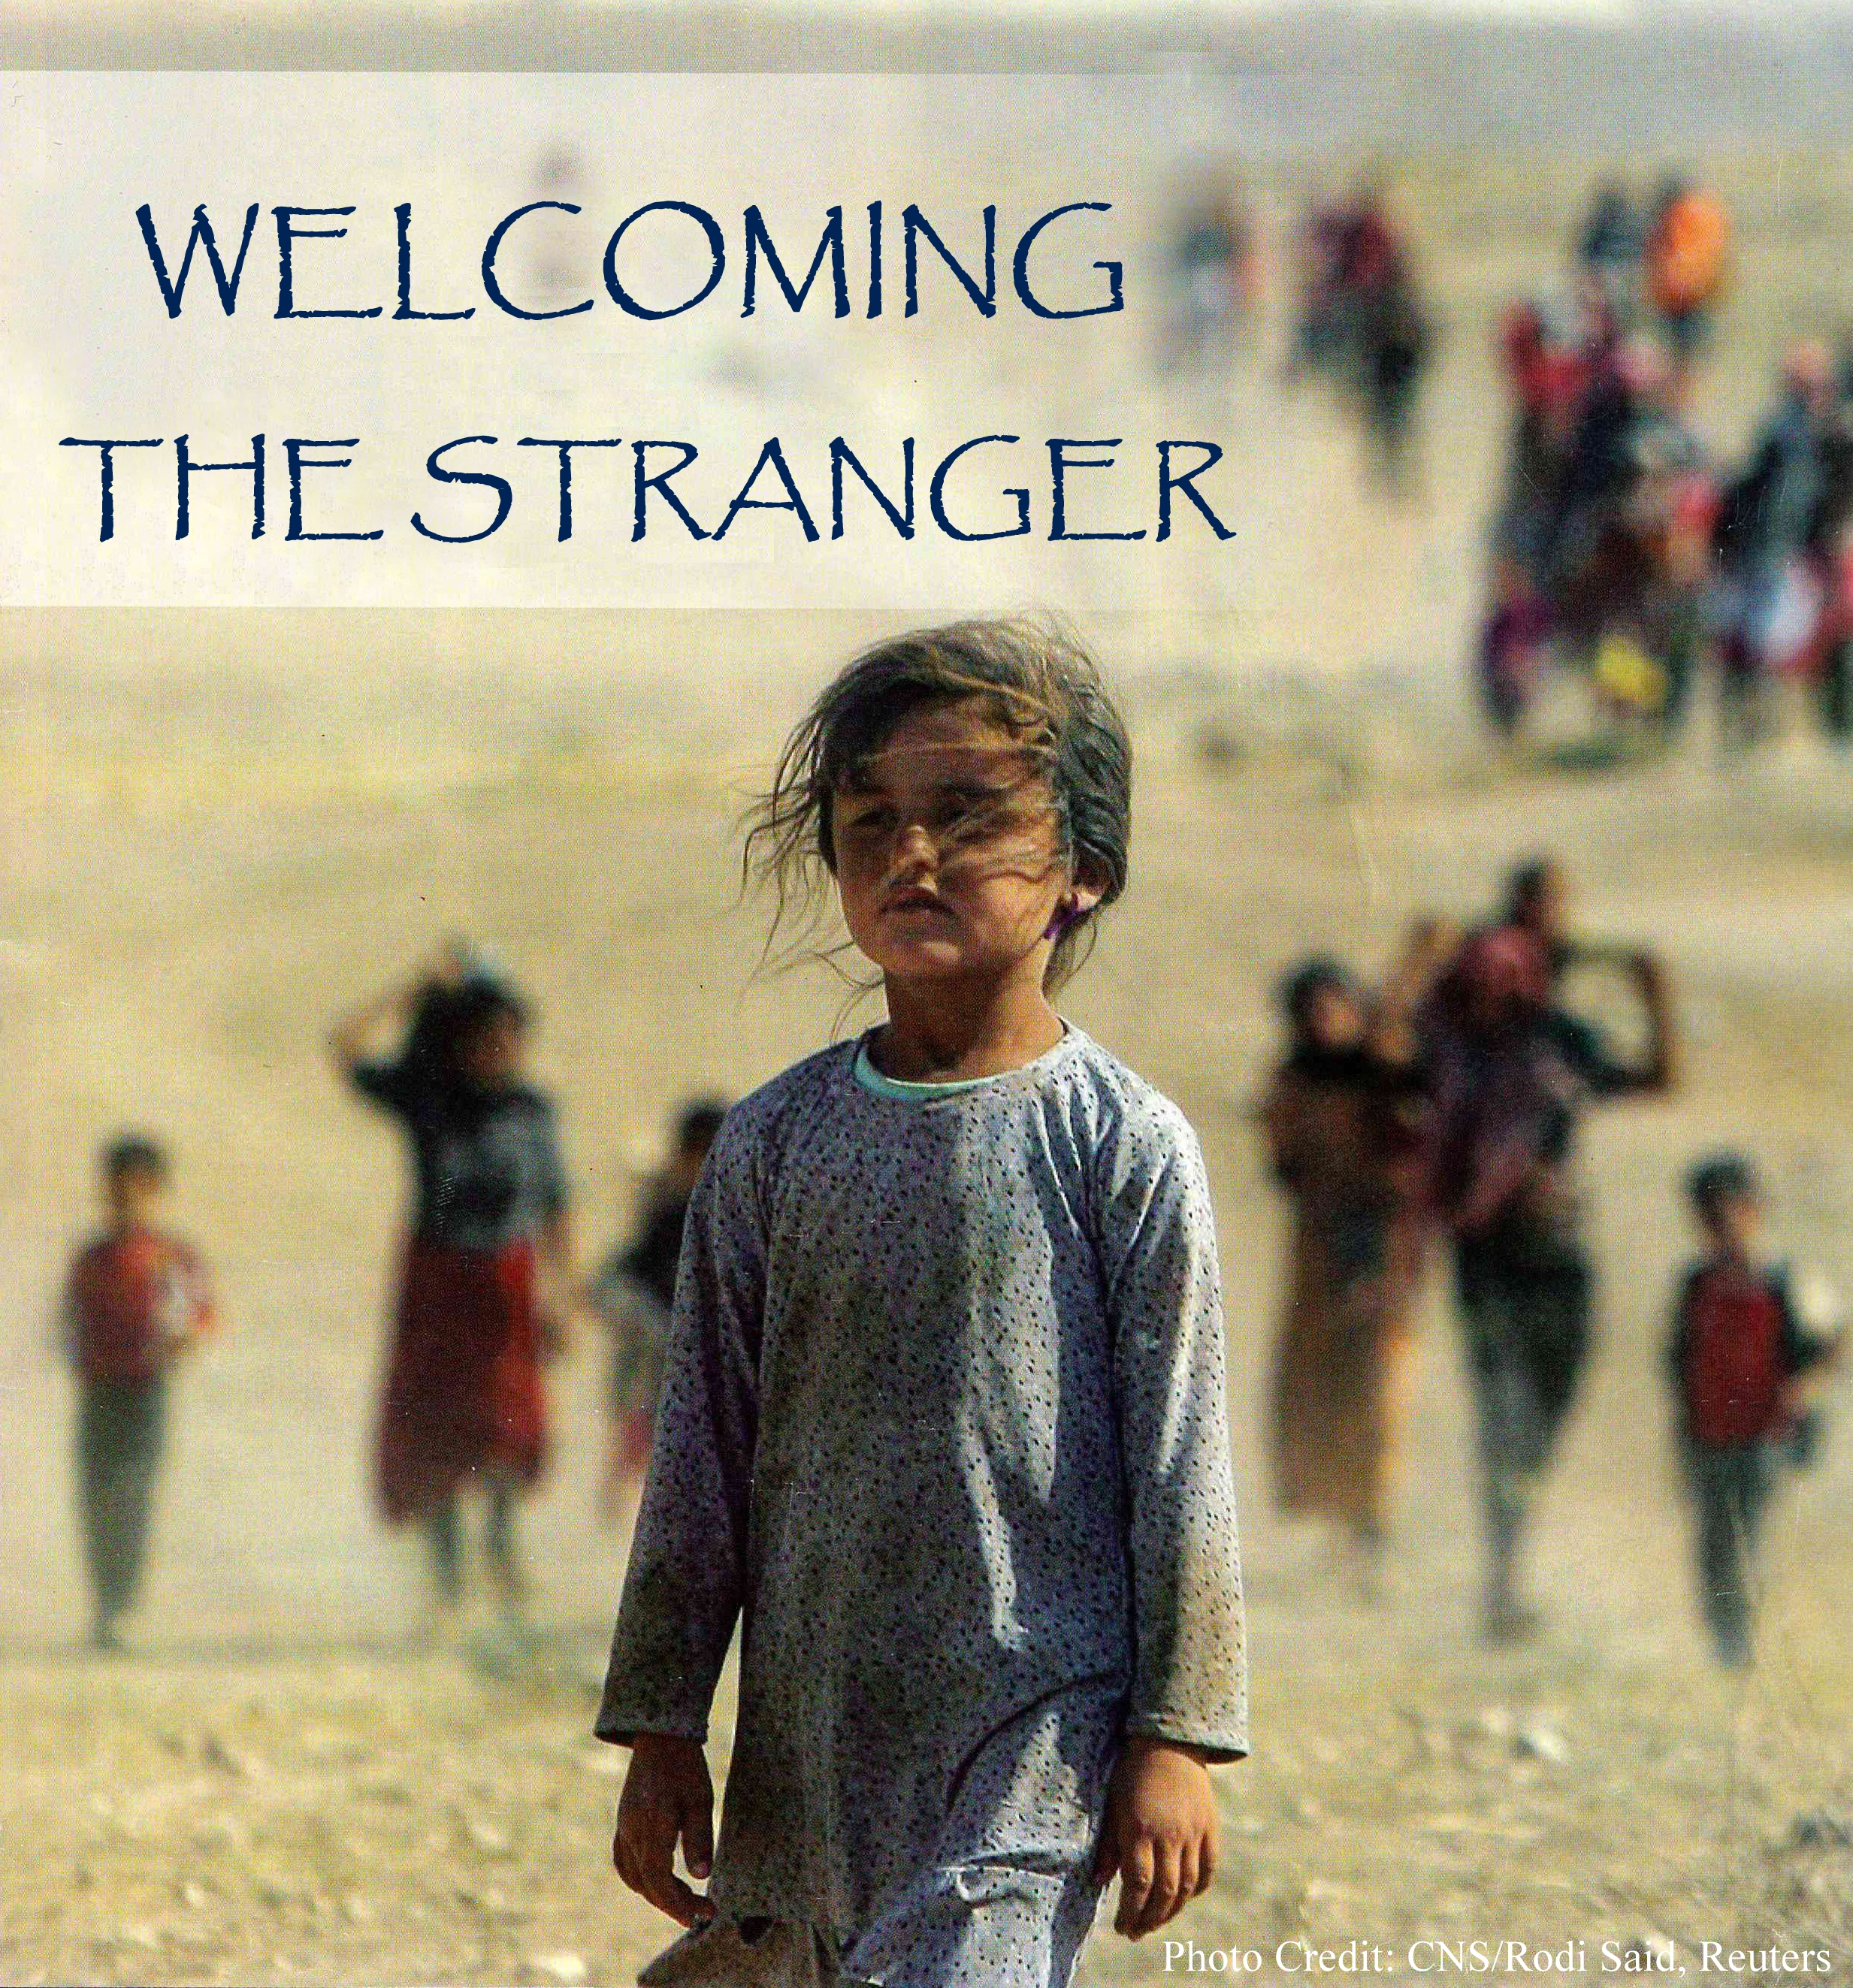 Source: saintjohnwellesley.org